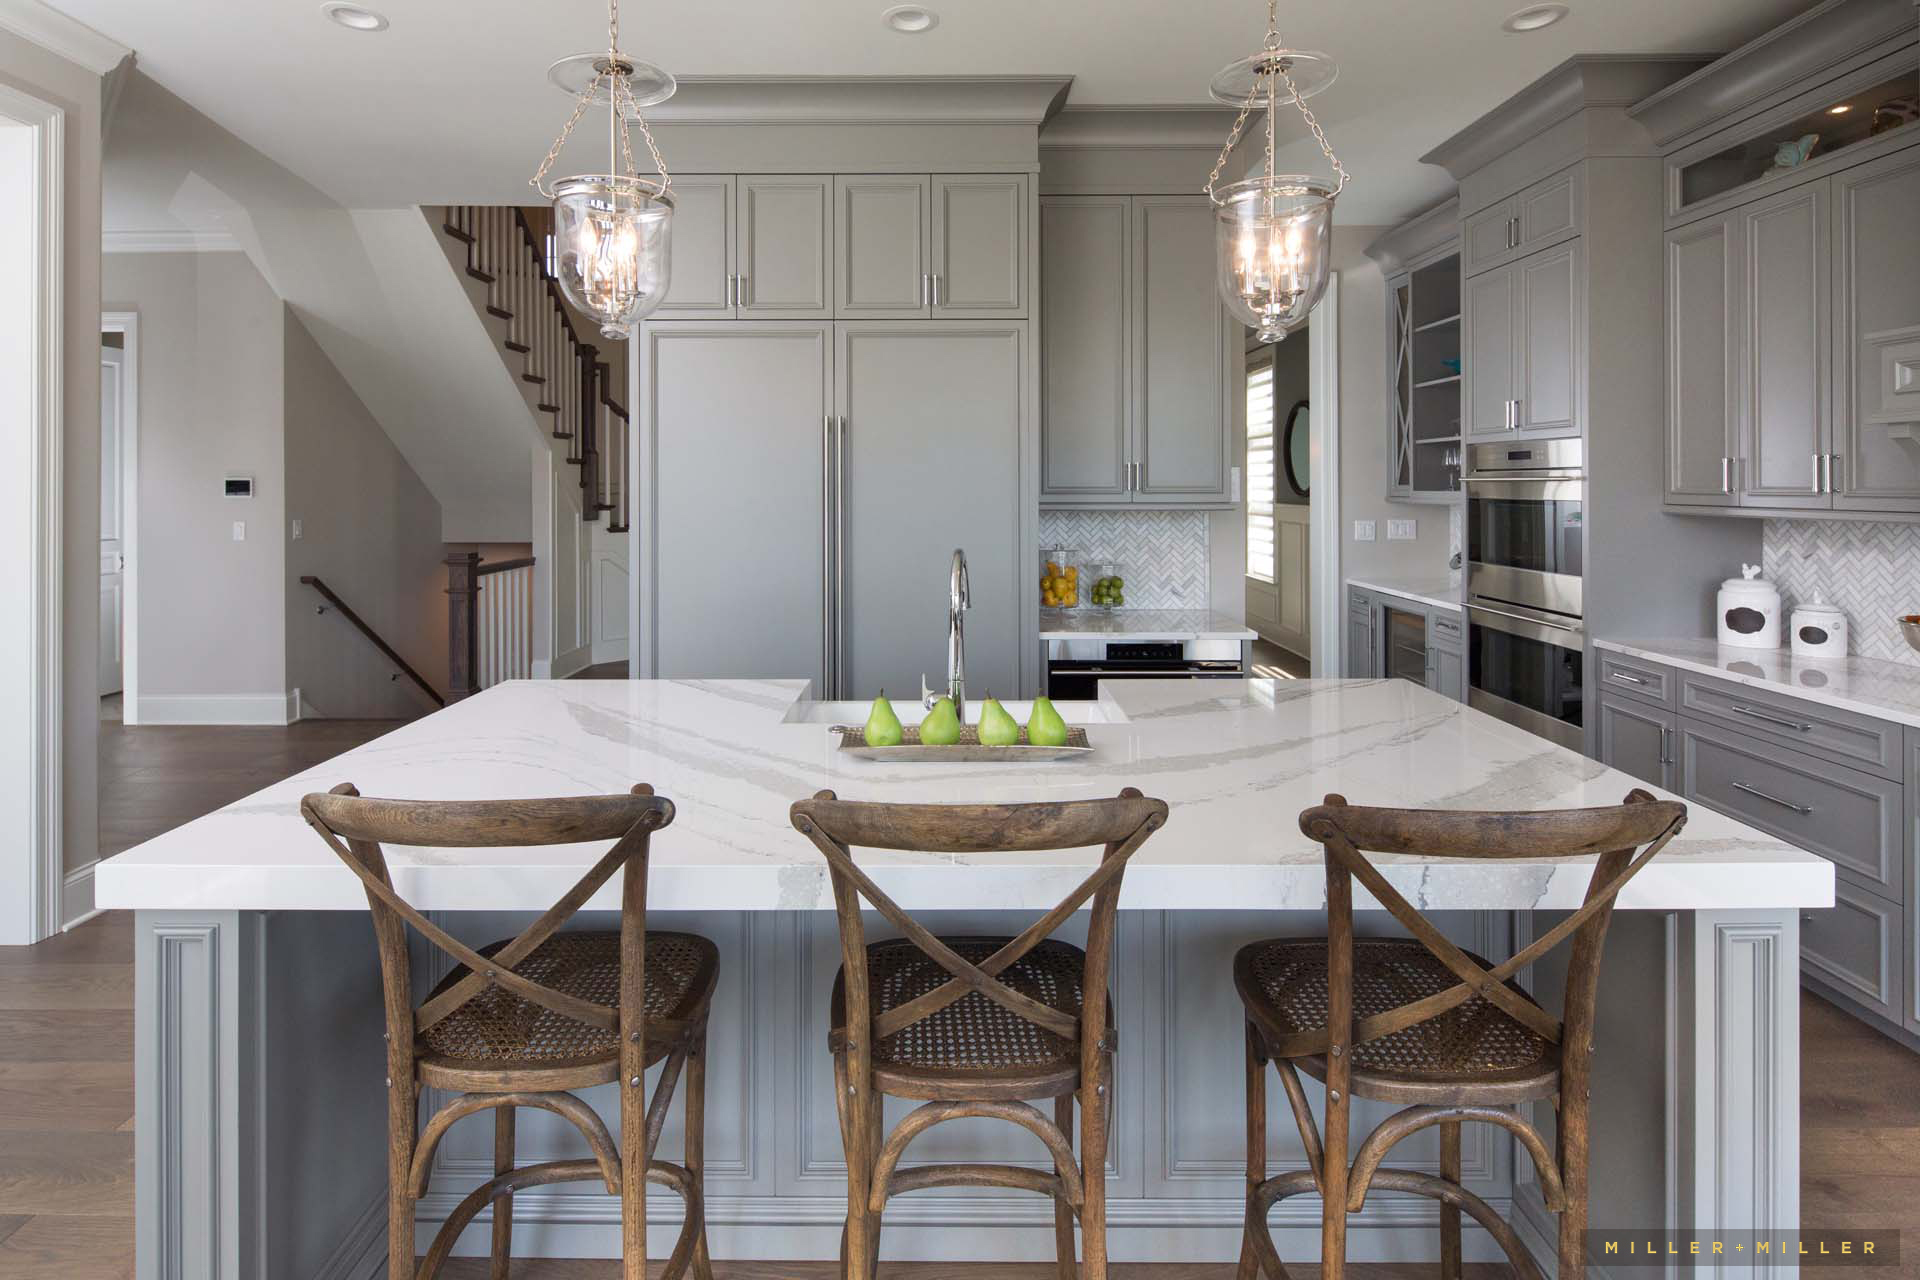 Inspiring Room: Modern Nantucket-Style Farmhouse Kitchen ...